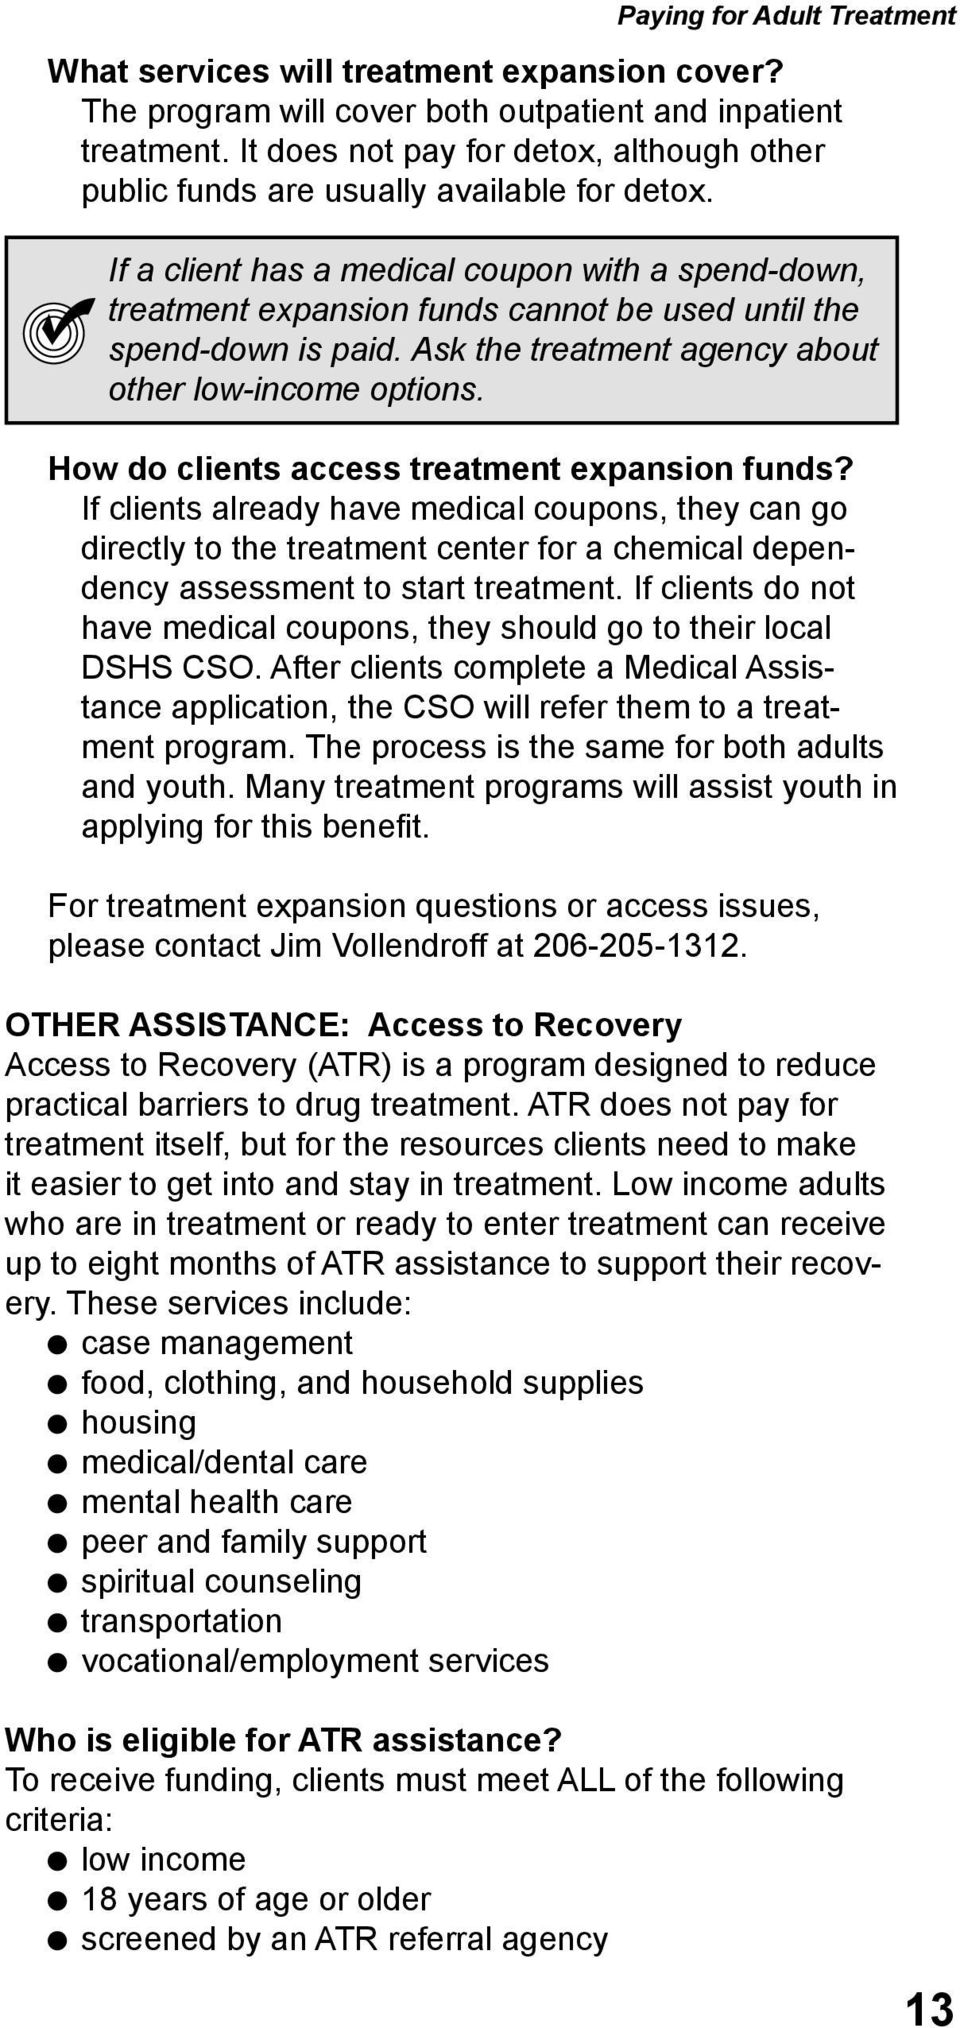 If a client has a medical coupon with a spend-down, treatment expansion funds cannot be used until the spend-down is paid. Ask the treatment agency about other low-income options.